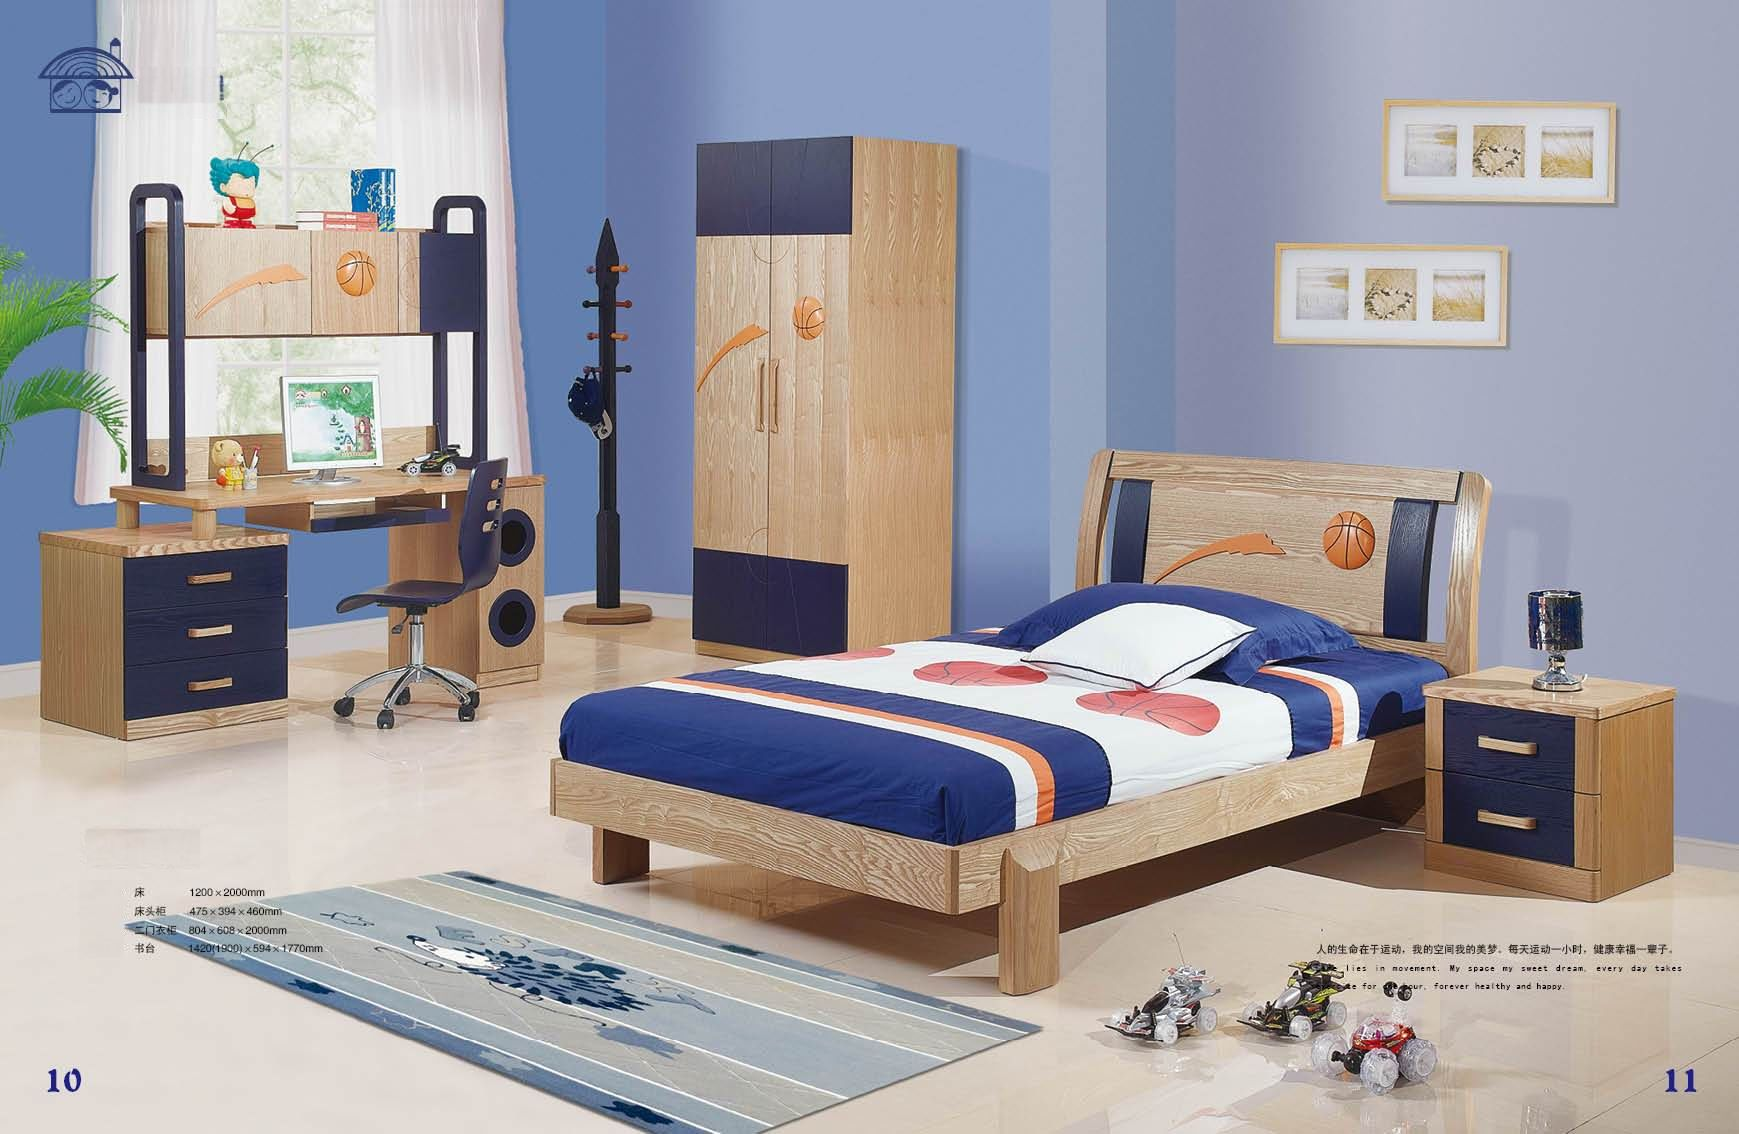 Youth Bedroom Furniture  Kids Bedroom Set Jkd20120#  China Beauteous Kids Bedroom Set Design Ideas